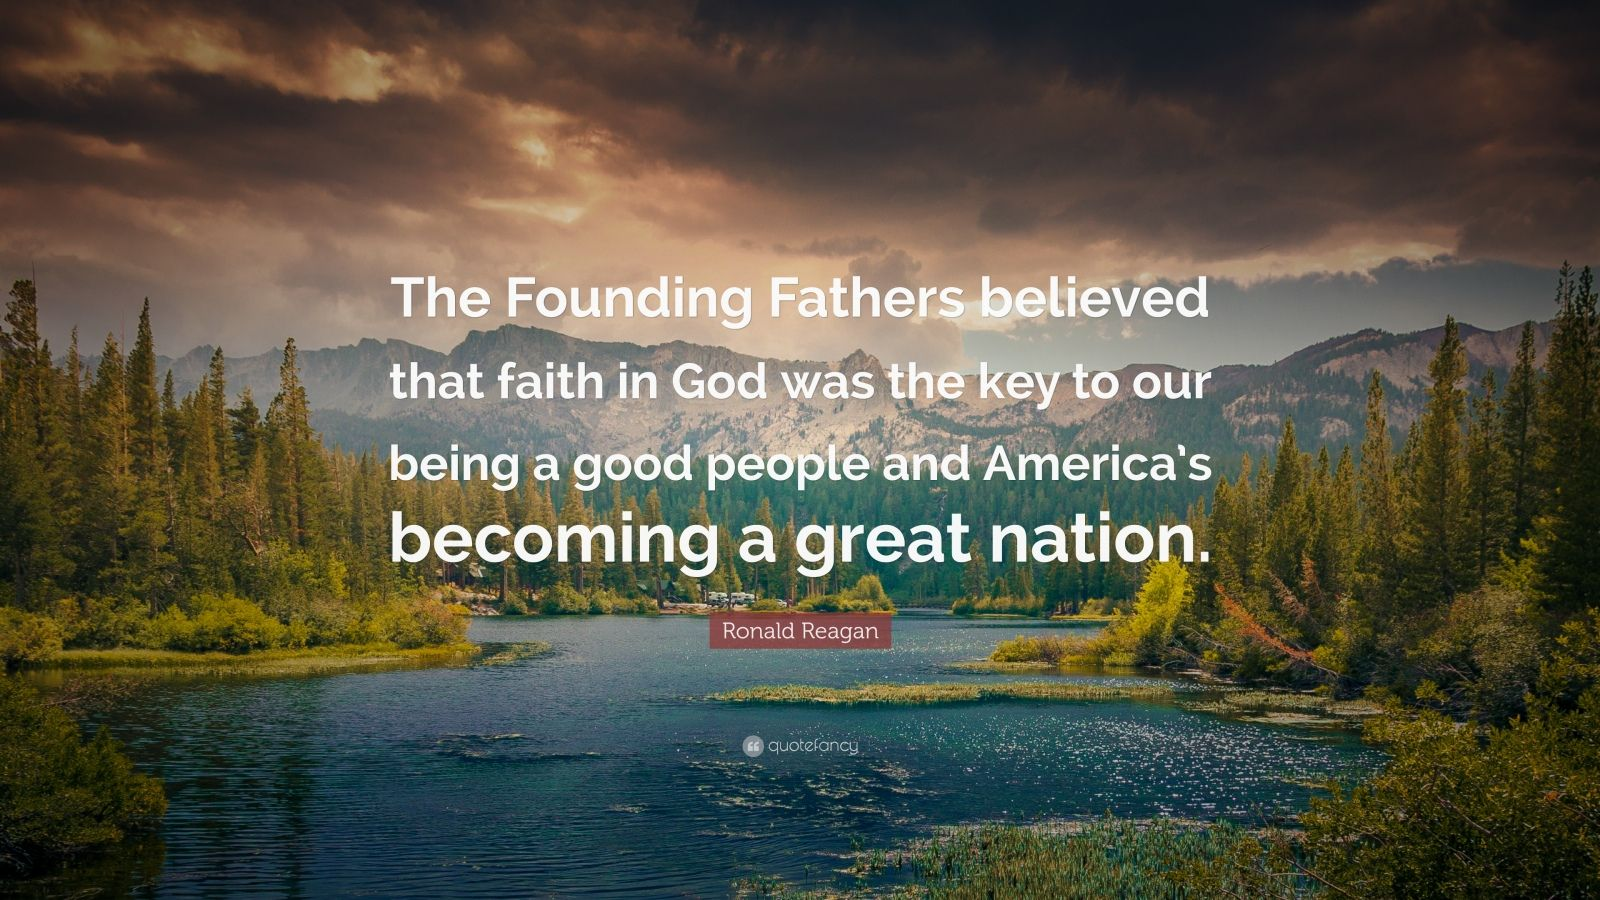 """Ronald Reagan Quote: """"The Founding Fathers believed that faith in God was the key to our being a good people and America's becoming a great nation."""""""